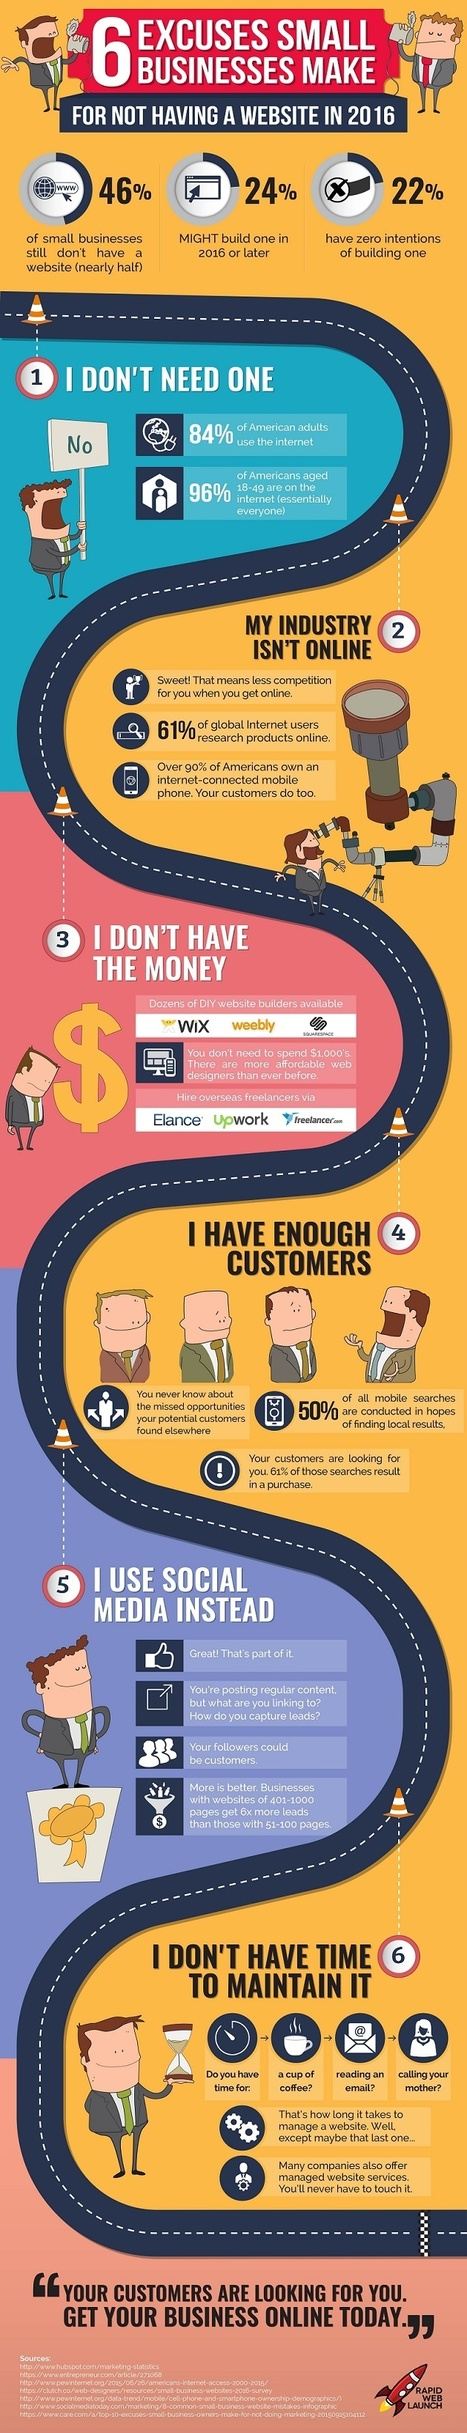 Six Excuses Small Businesses Make for Not Having a Website #Infographic | MobileWeb | Scoop.it